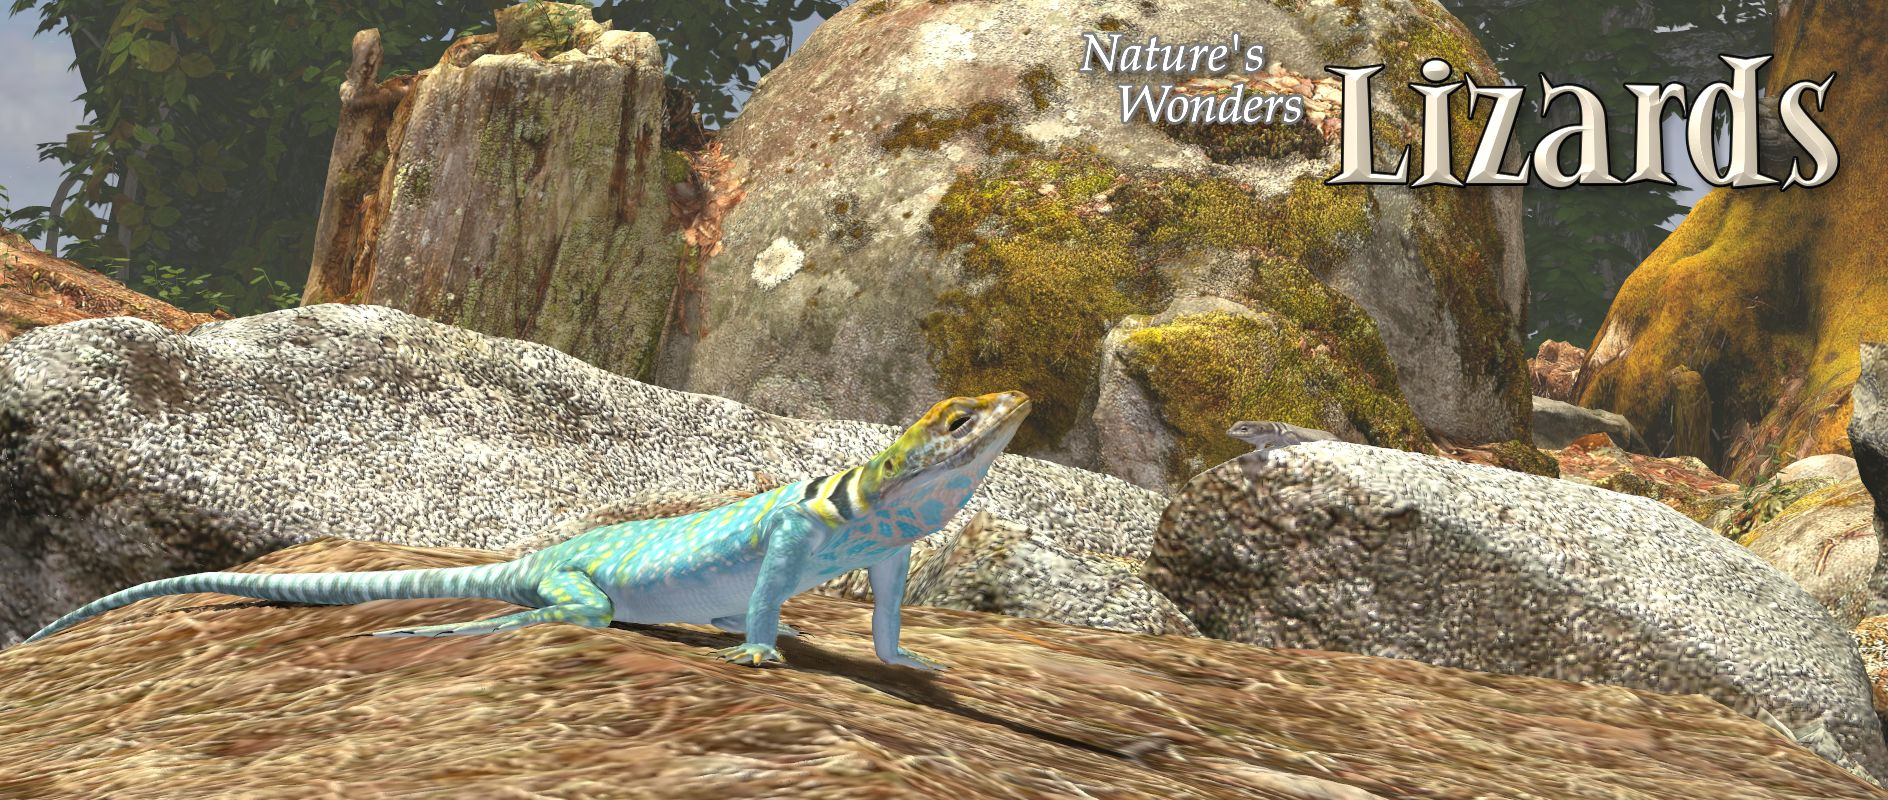 Nature's Wonders Lizards of the World Vol 2